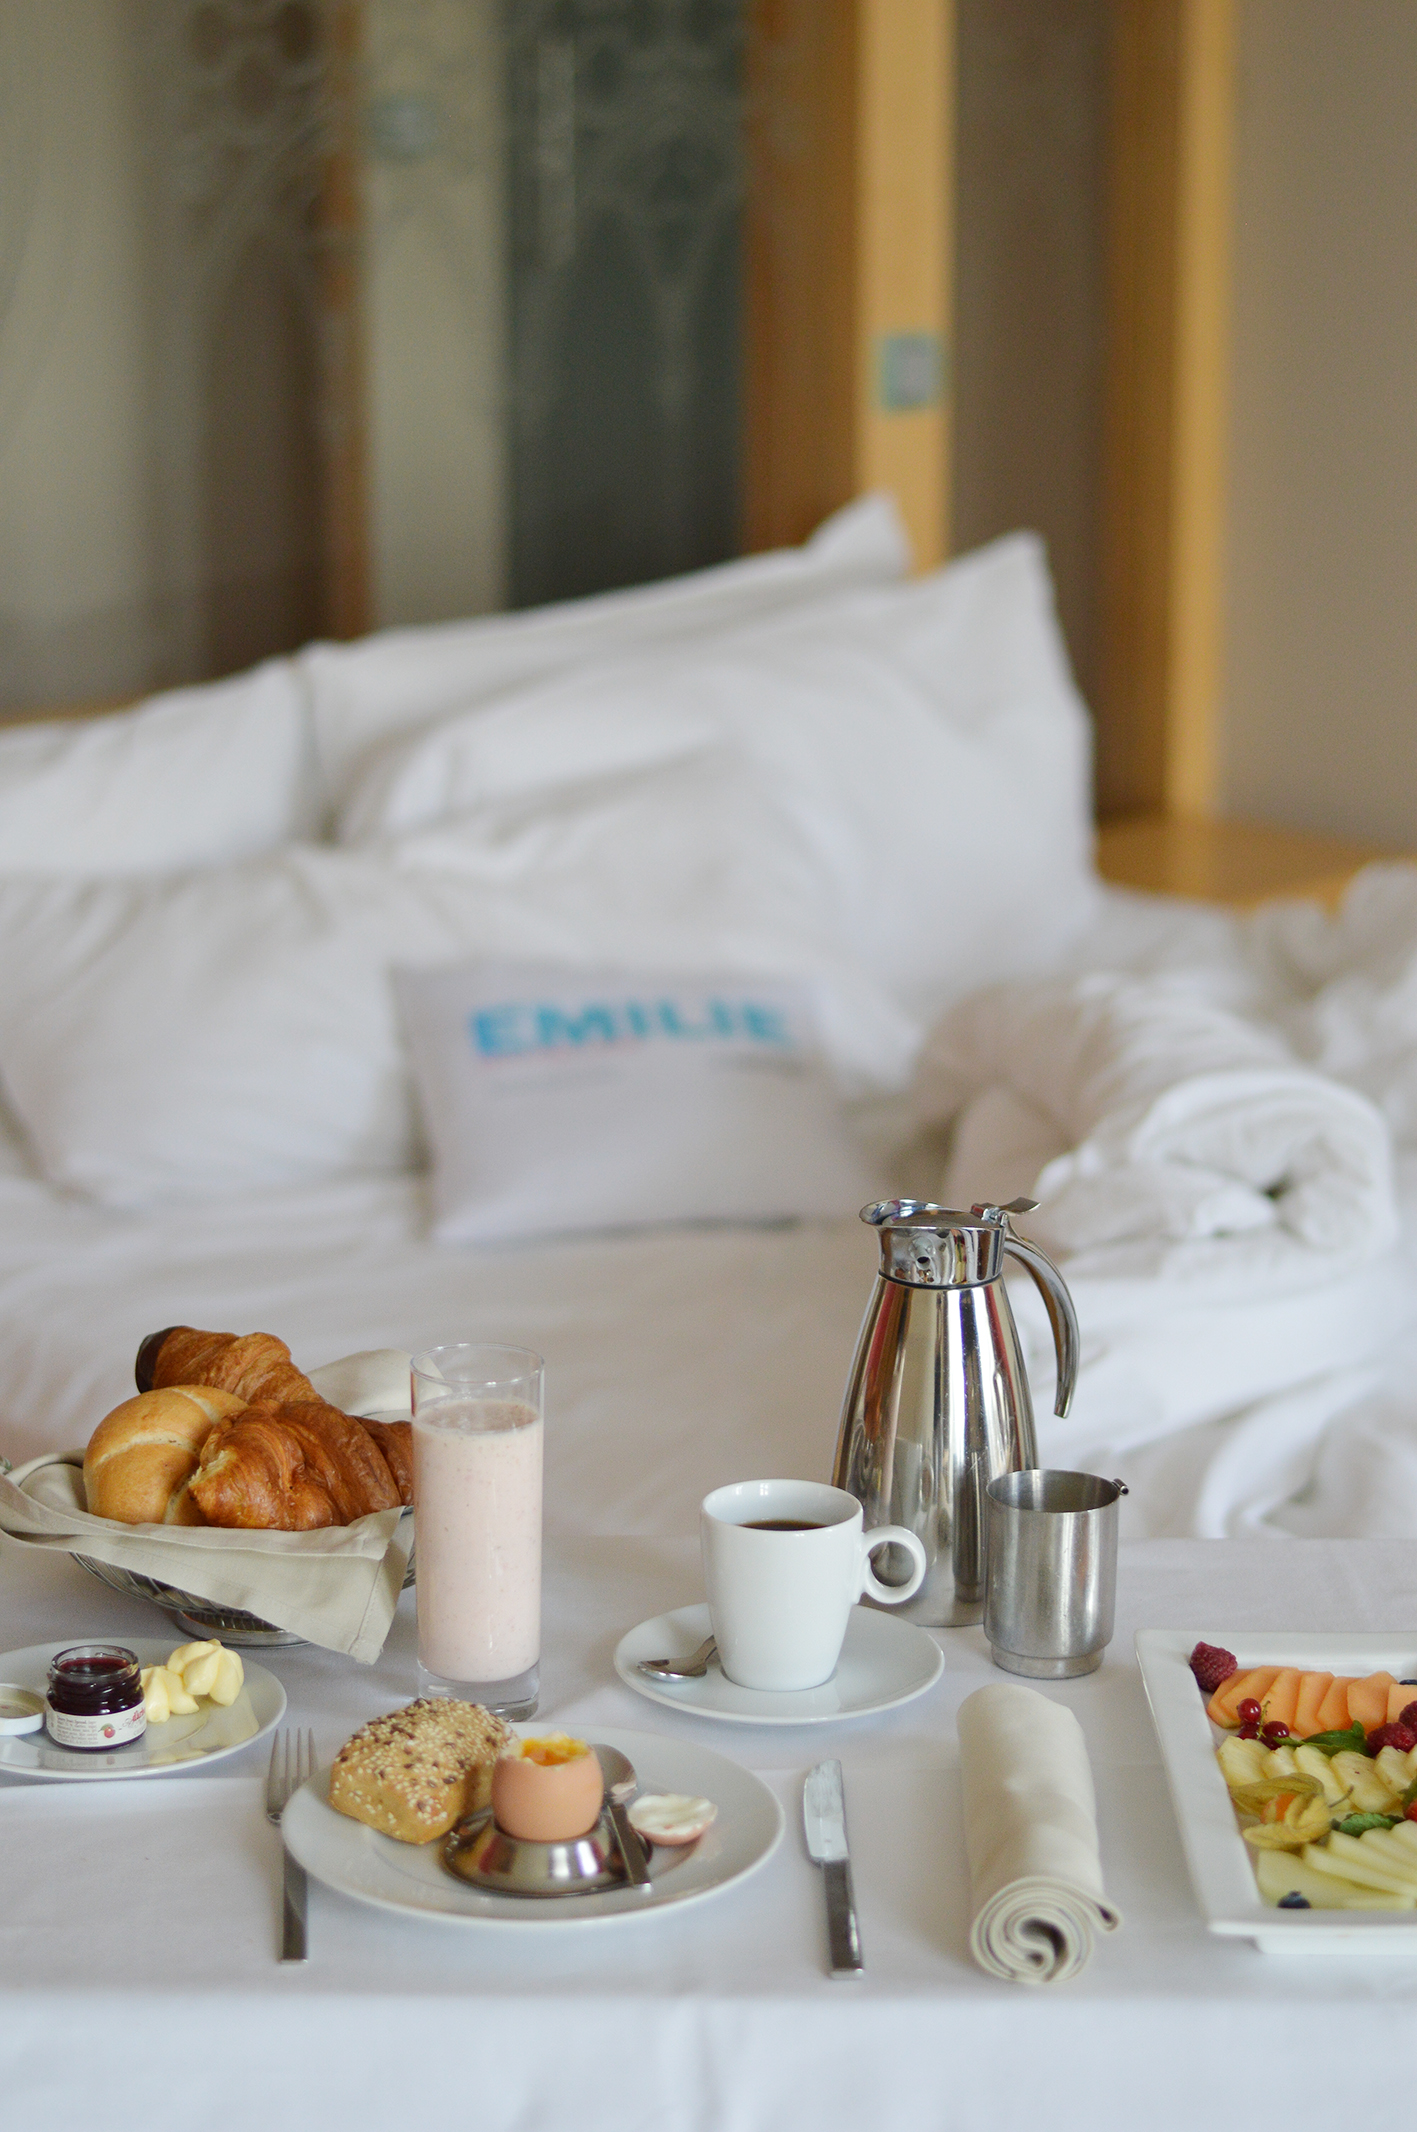 Breakfast in bed - Le Méridien Vienna